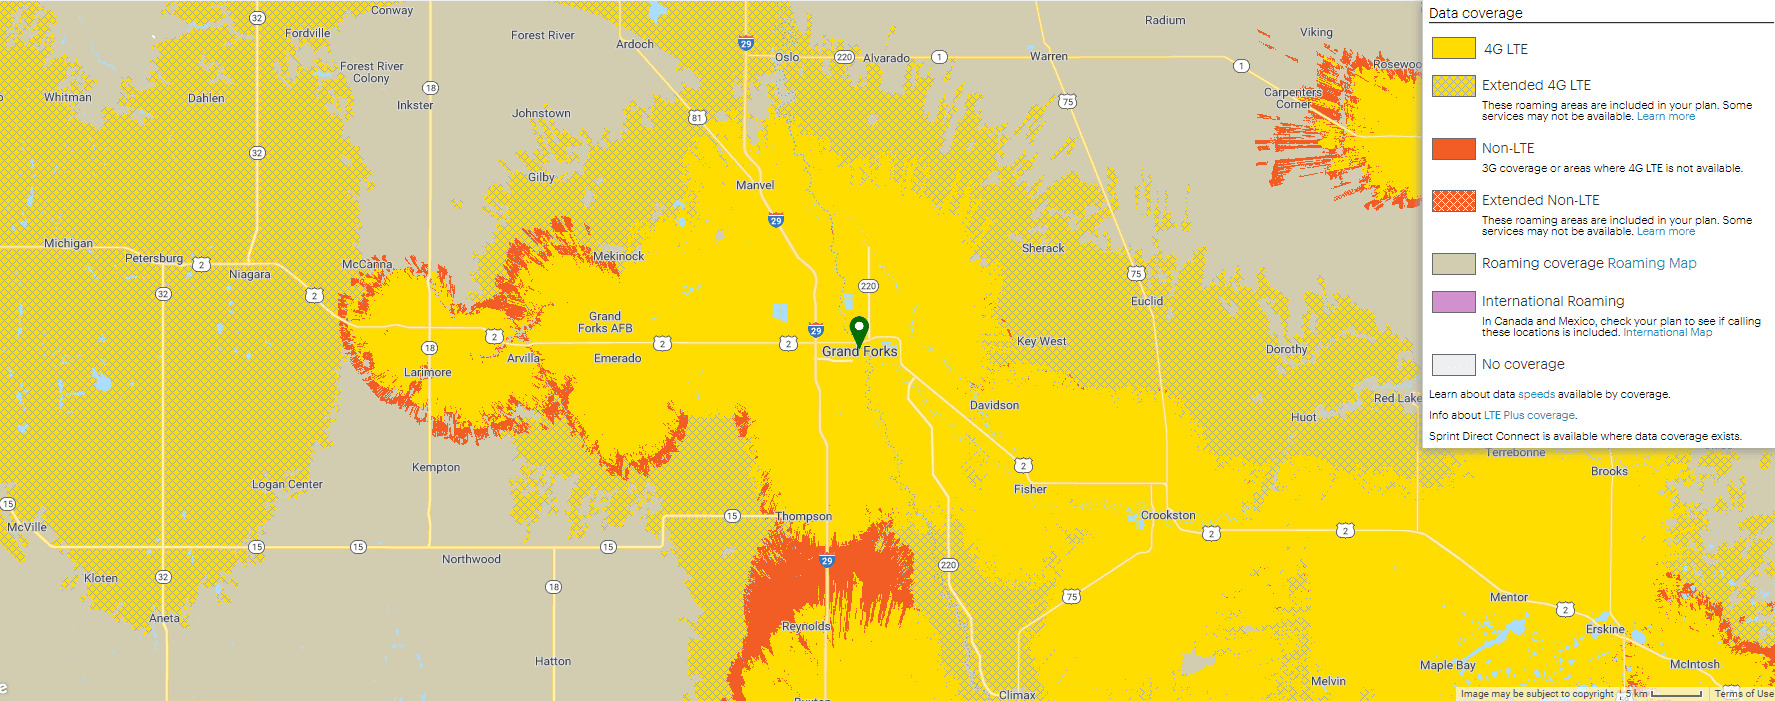 Sprint Data Coverage Map (PNG)